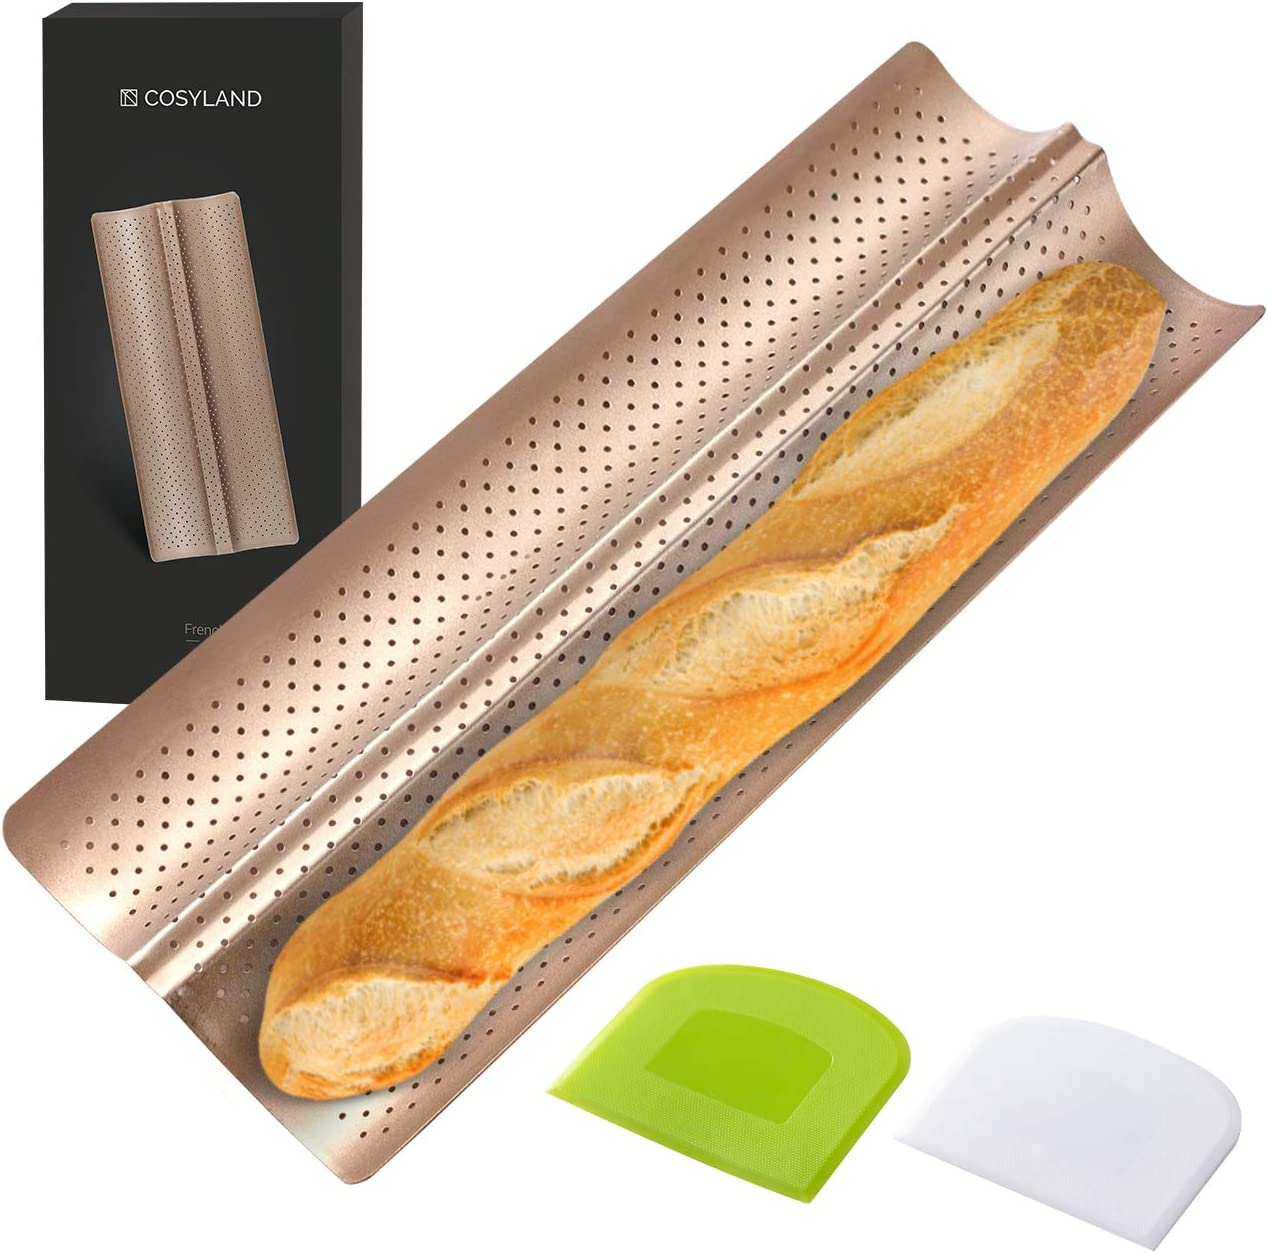 Perforated baguette pan for French bread baking.